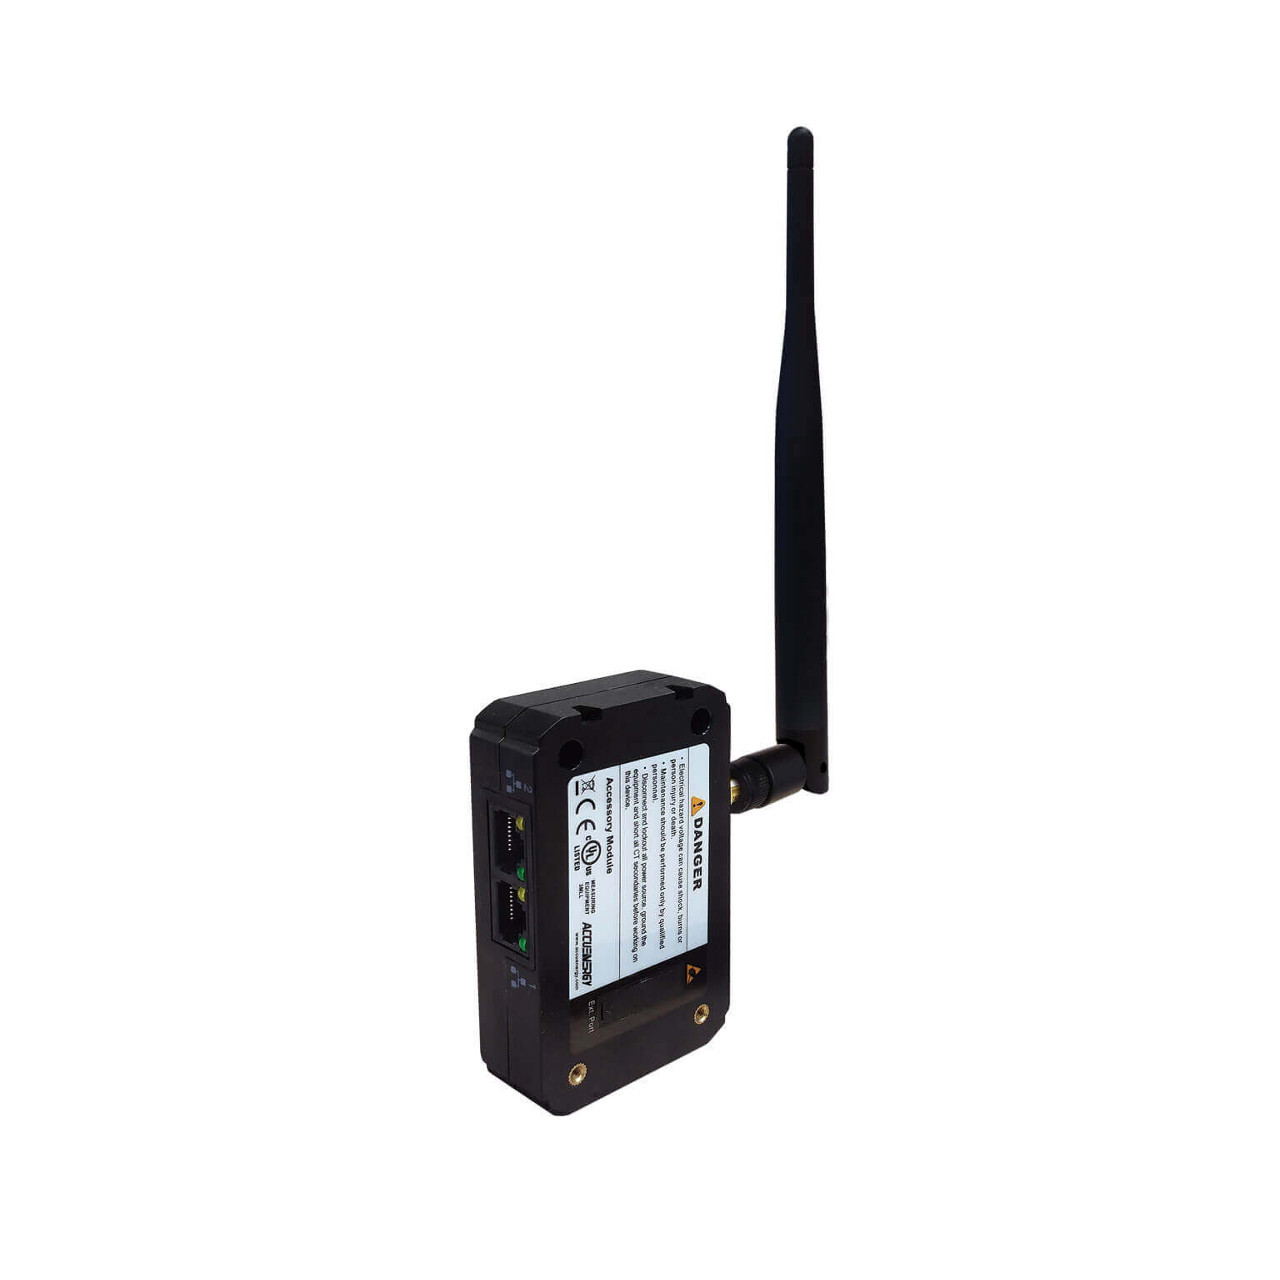 AccuEnergy_WEB2-WIFI-Ethernet-Interface